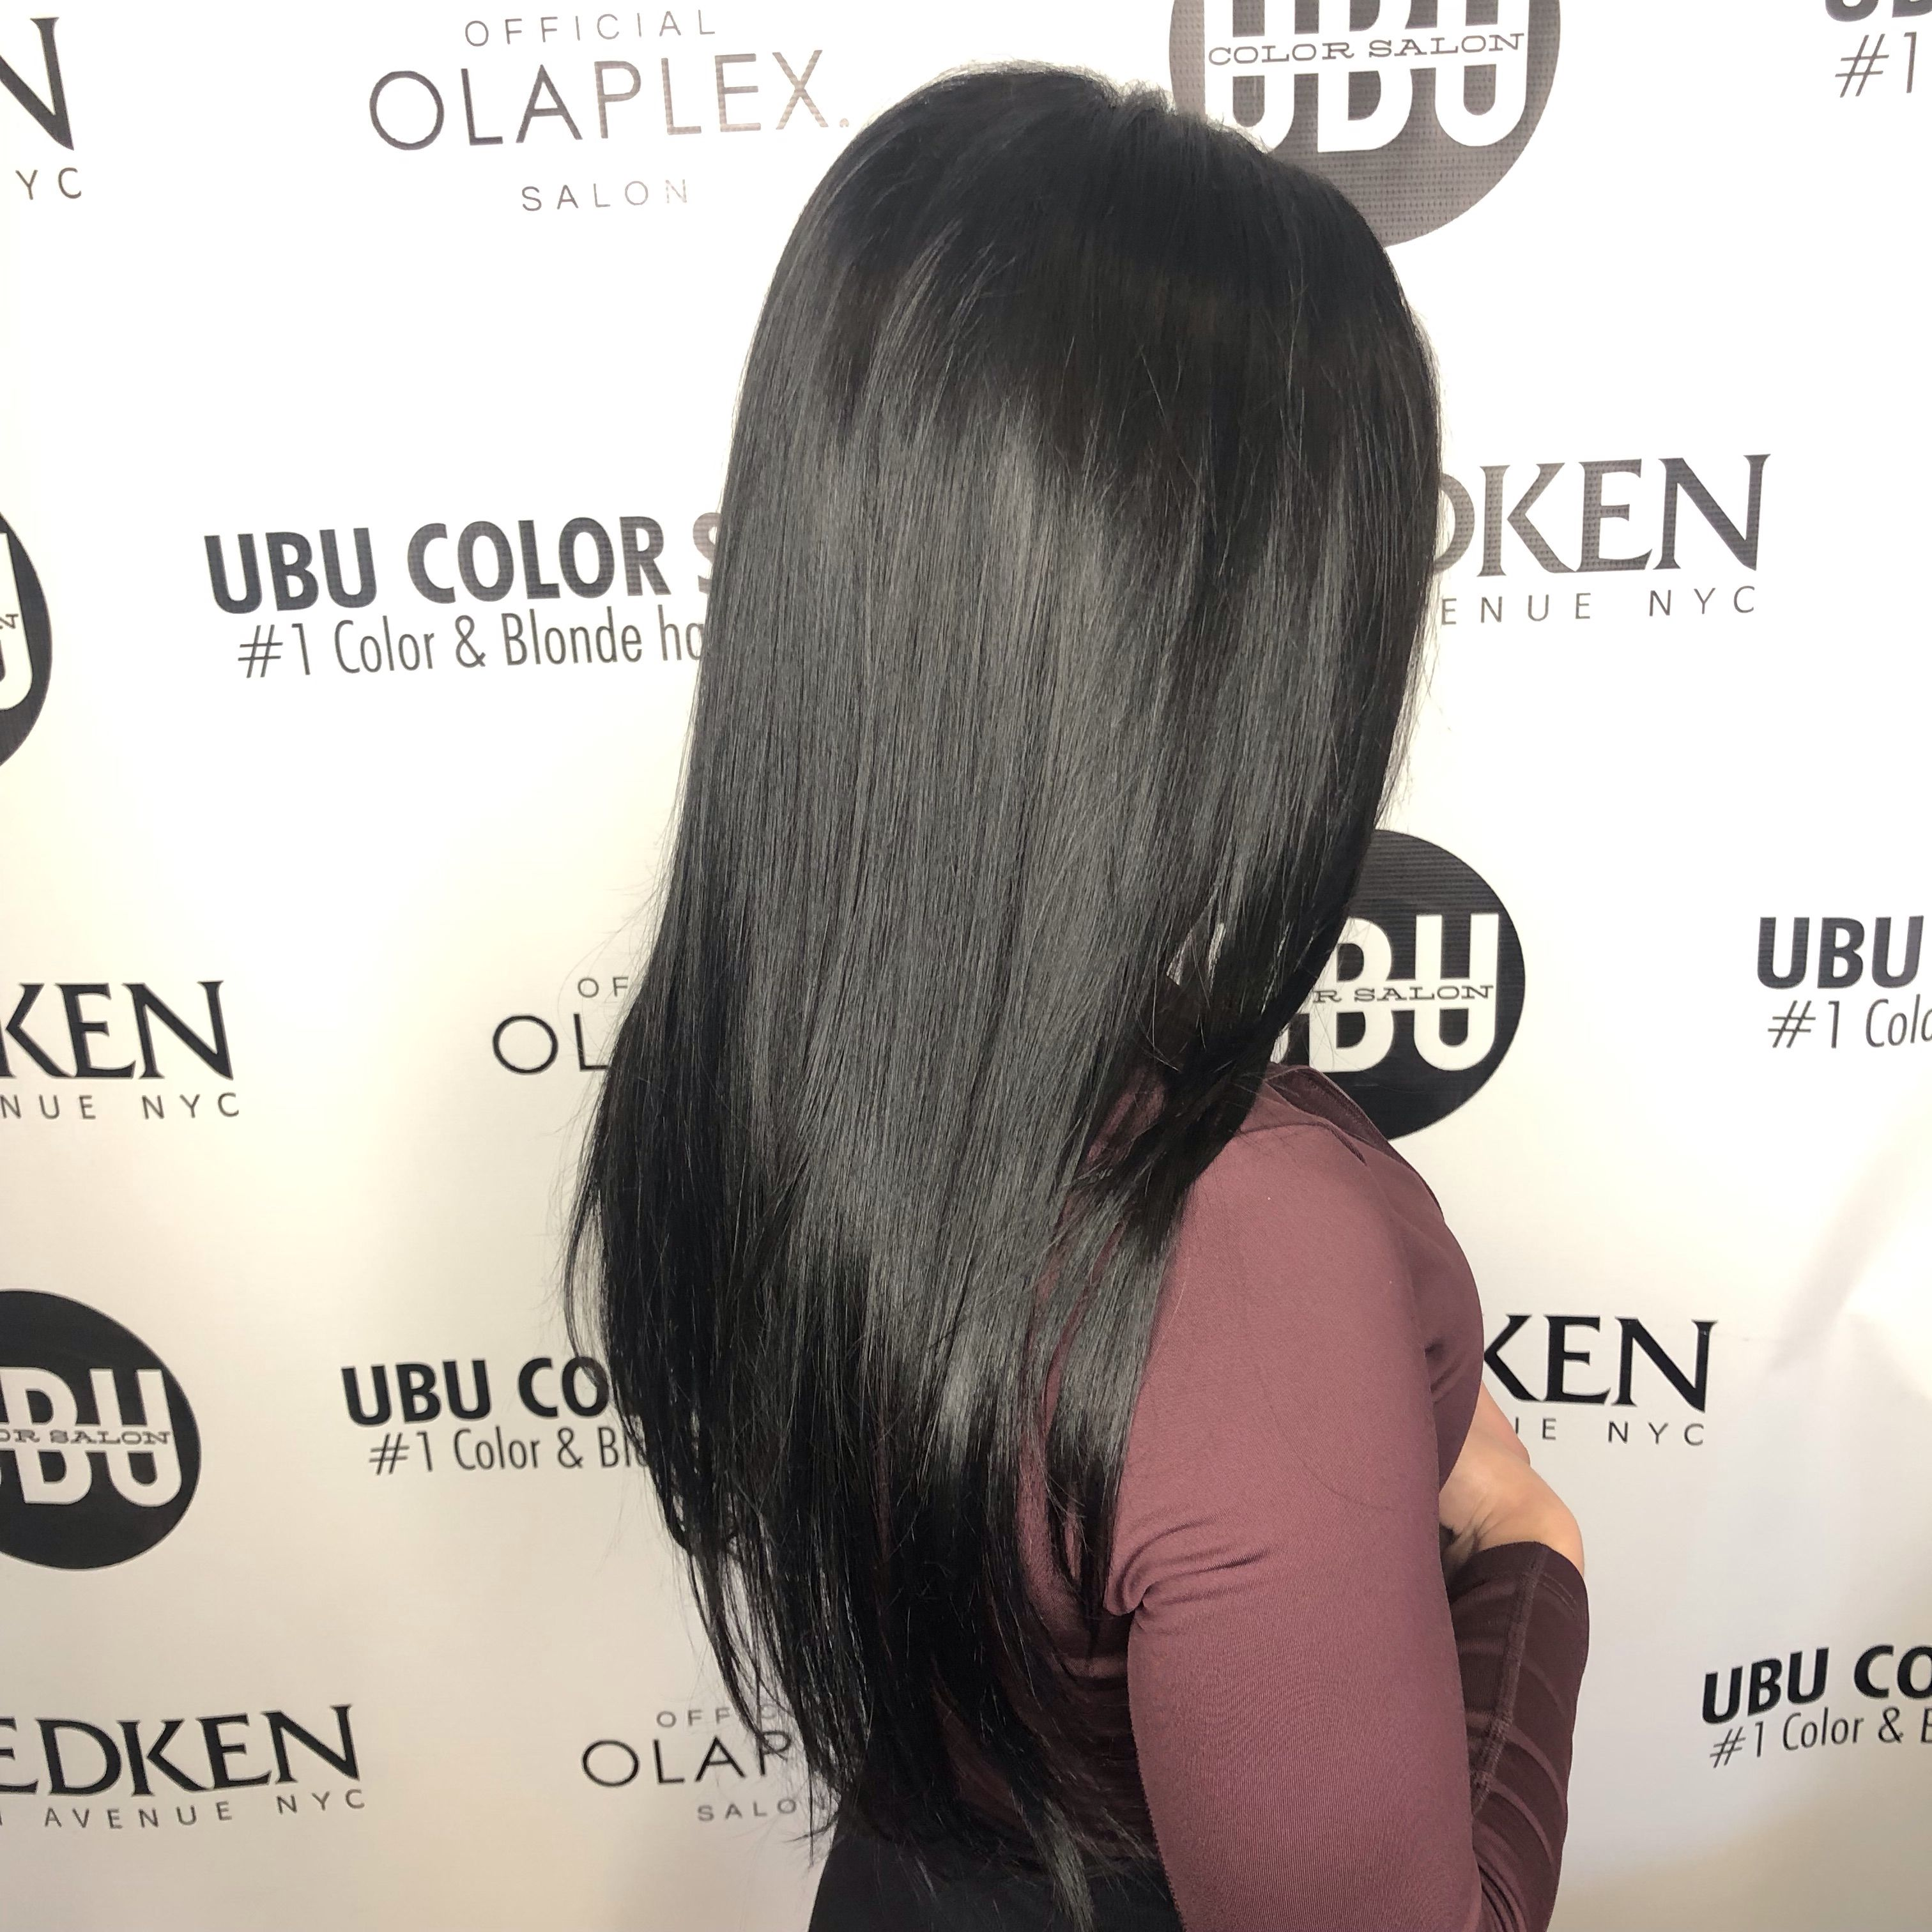 Home Ubu Color Salon In Tampa Fl Blonde Color Blonde Hd Dark Hair